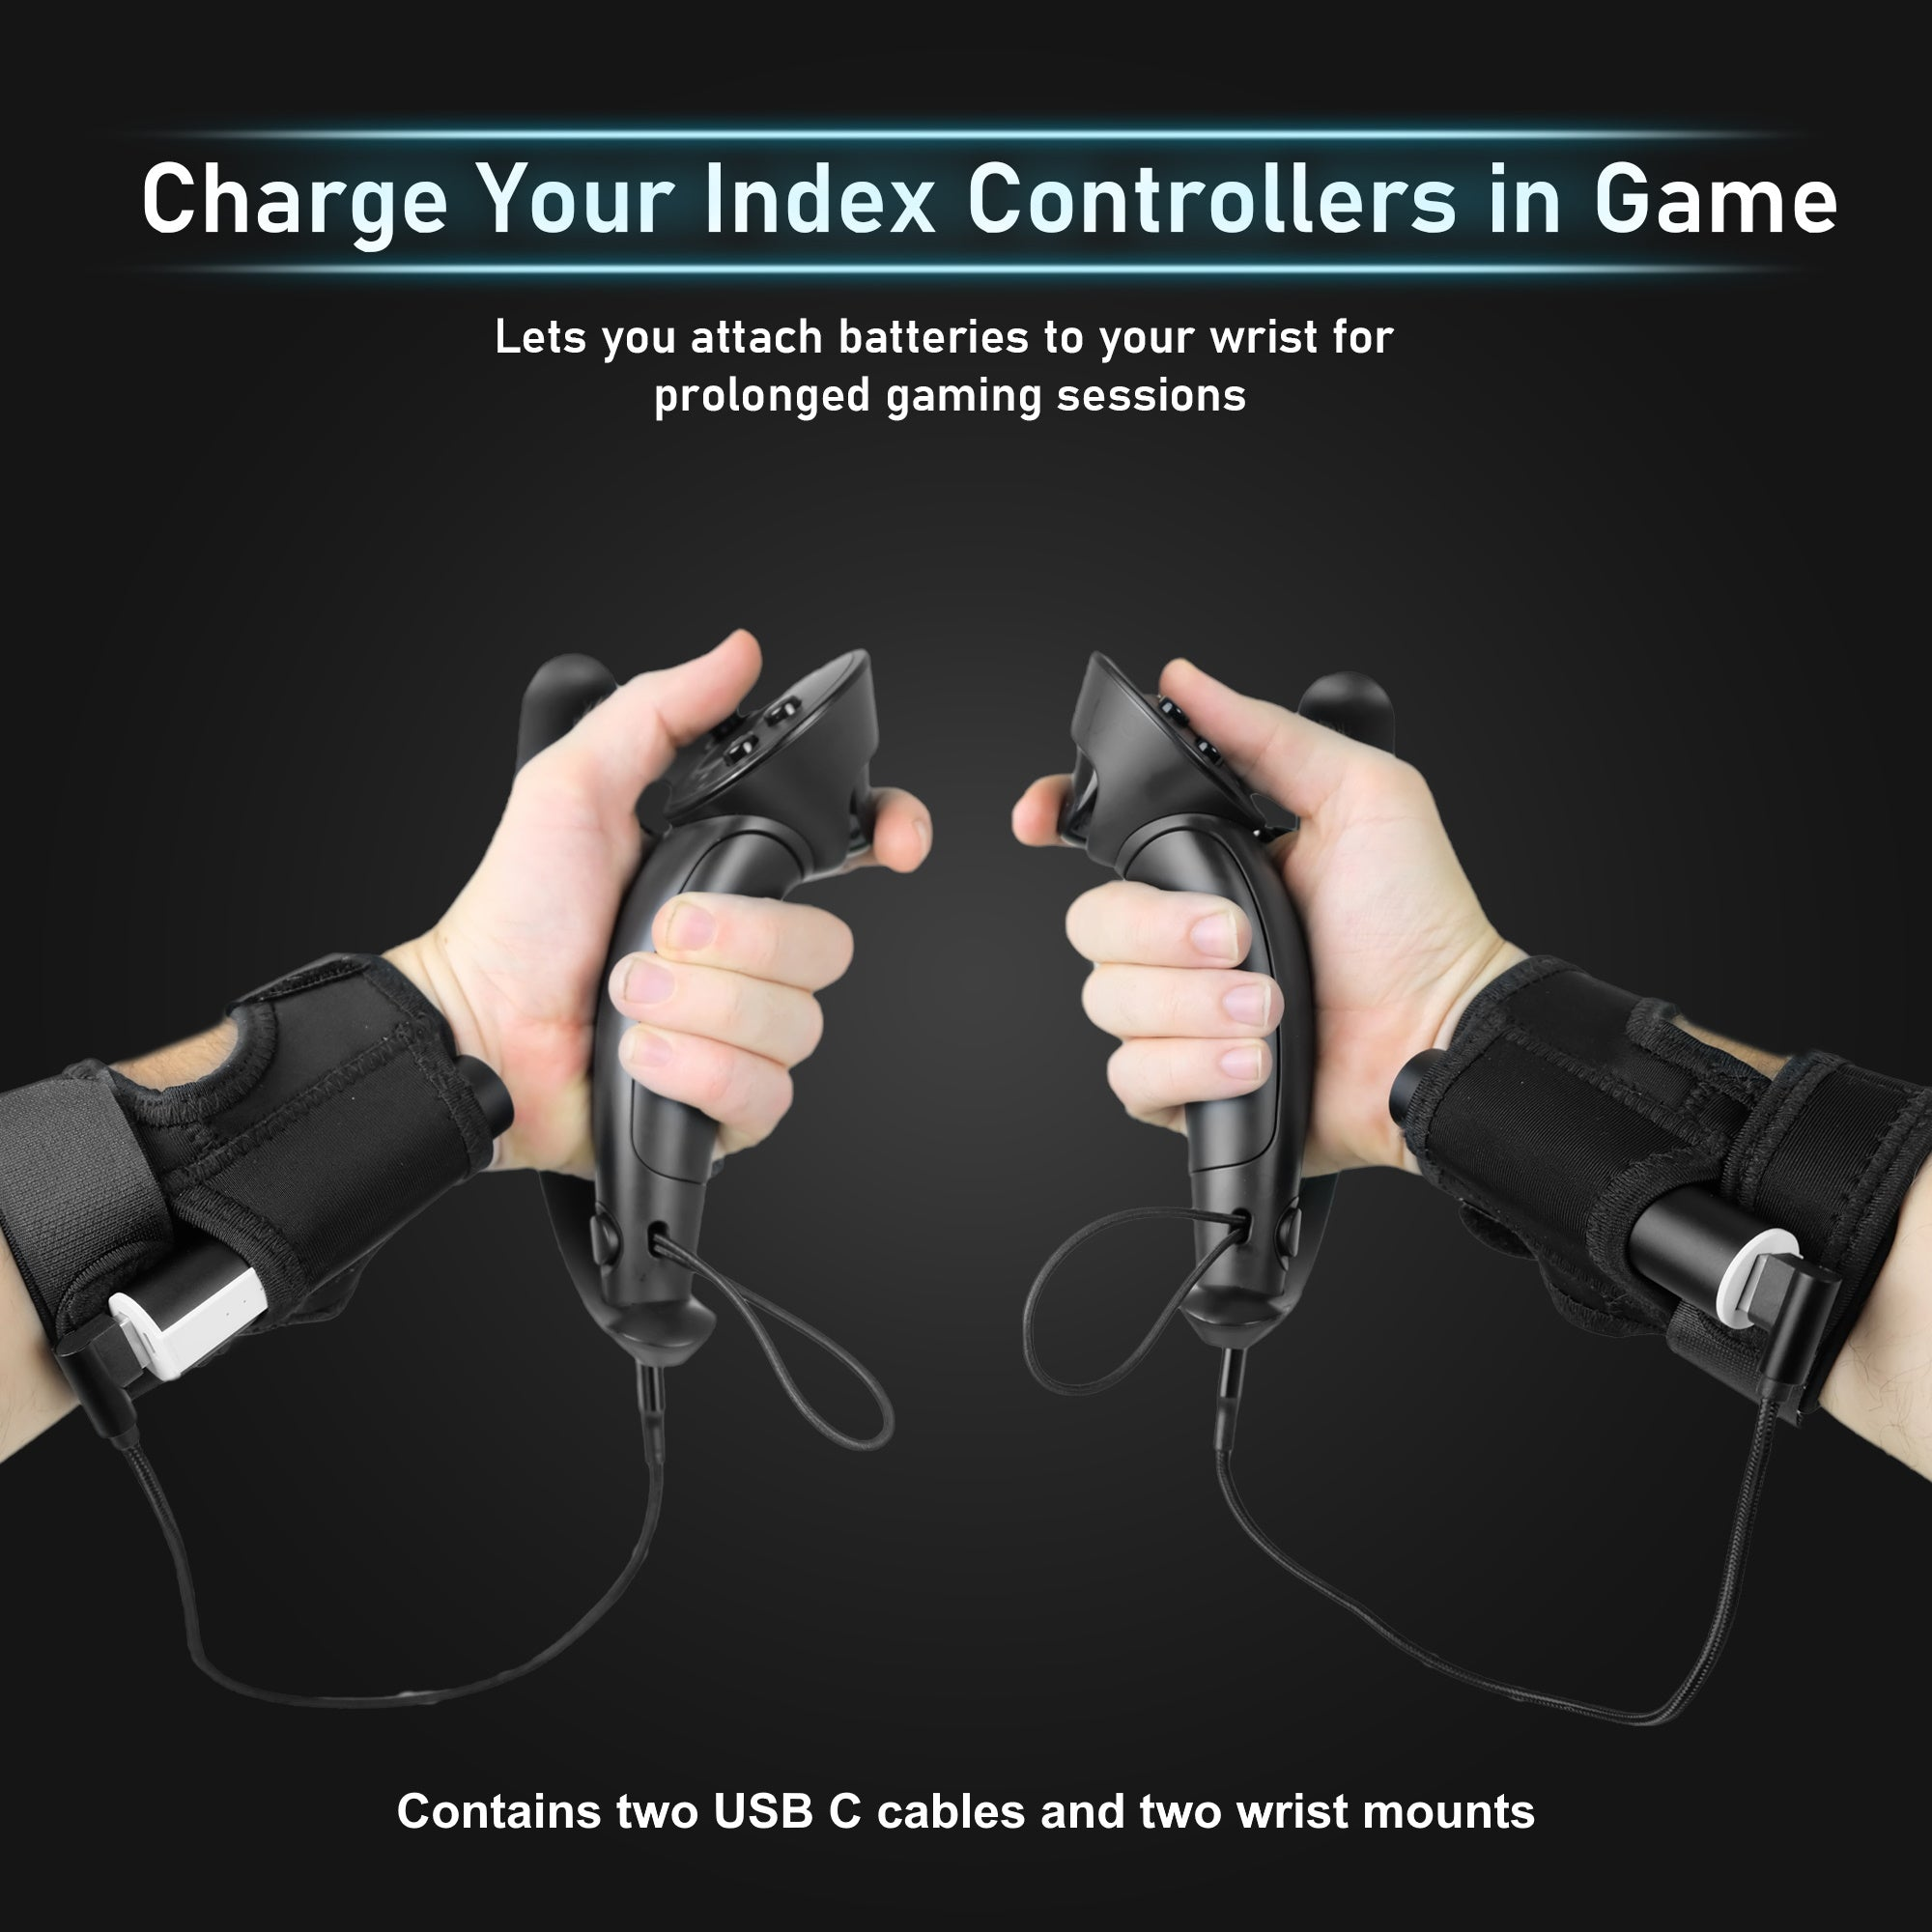 Valve Index Wrist Mounted Battery Kit - Accessory That Charges Your Controllers While Playing